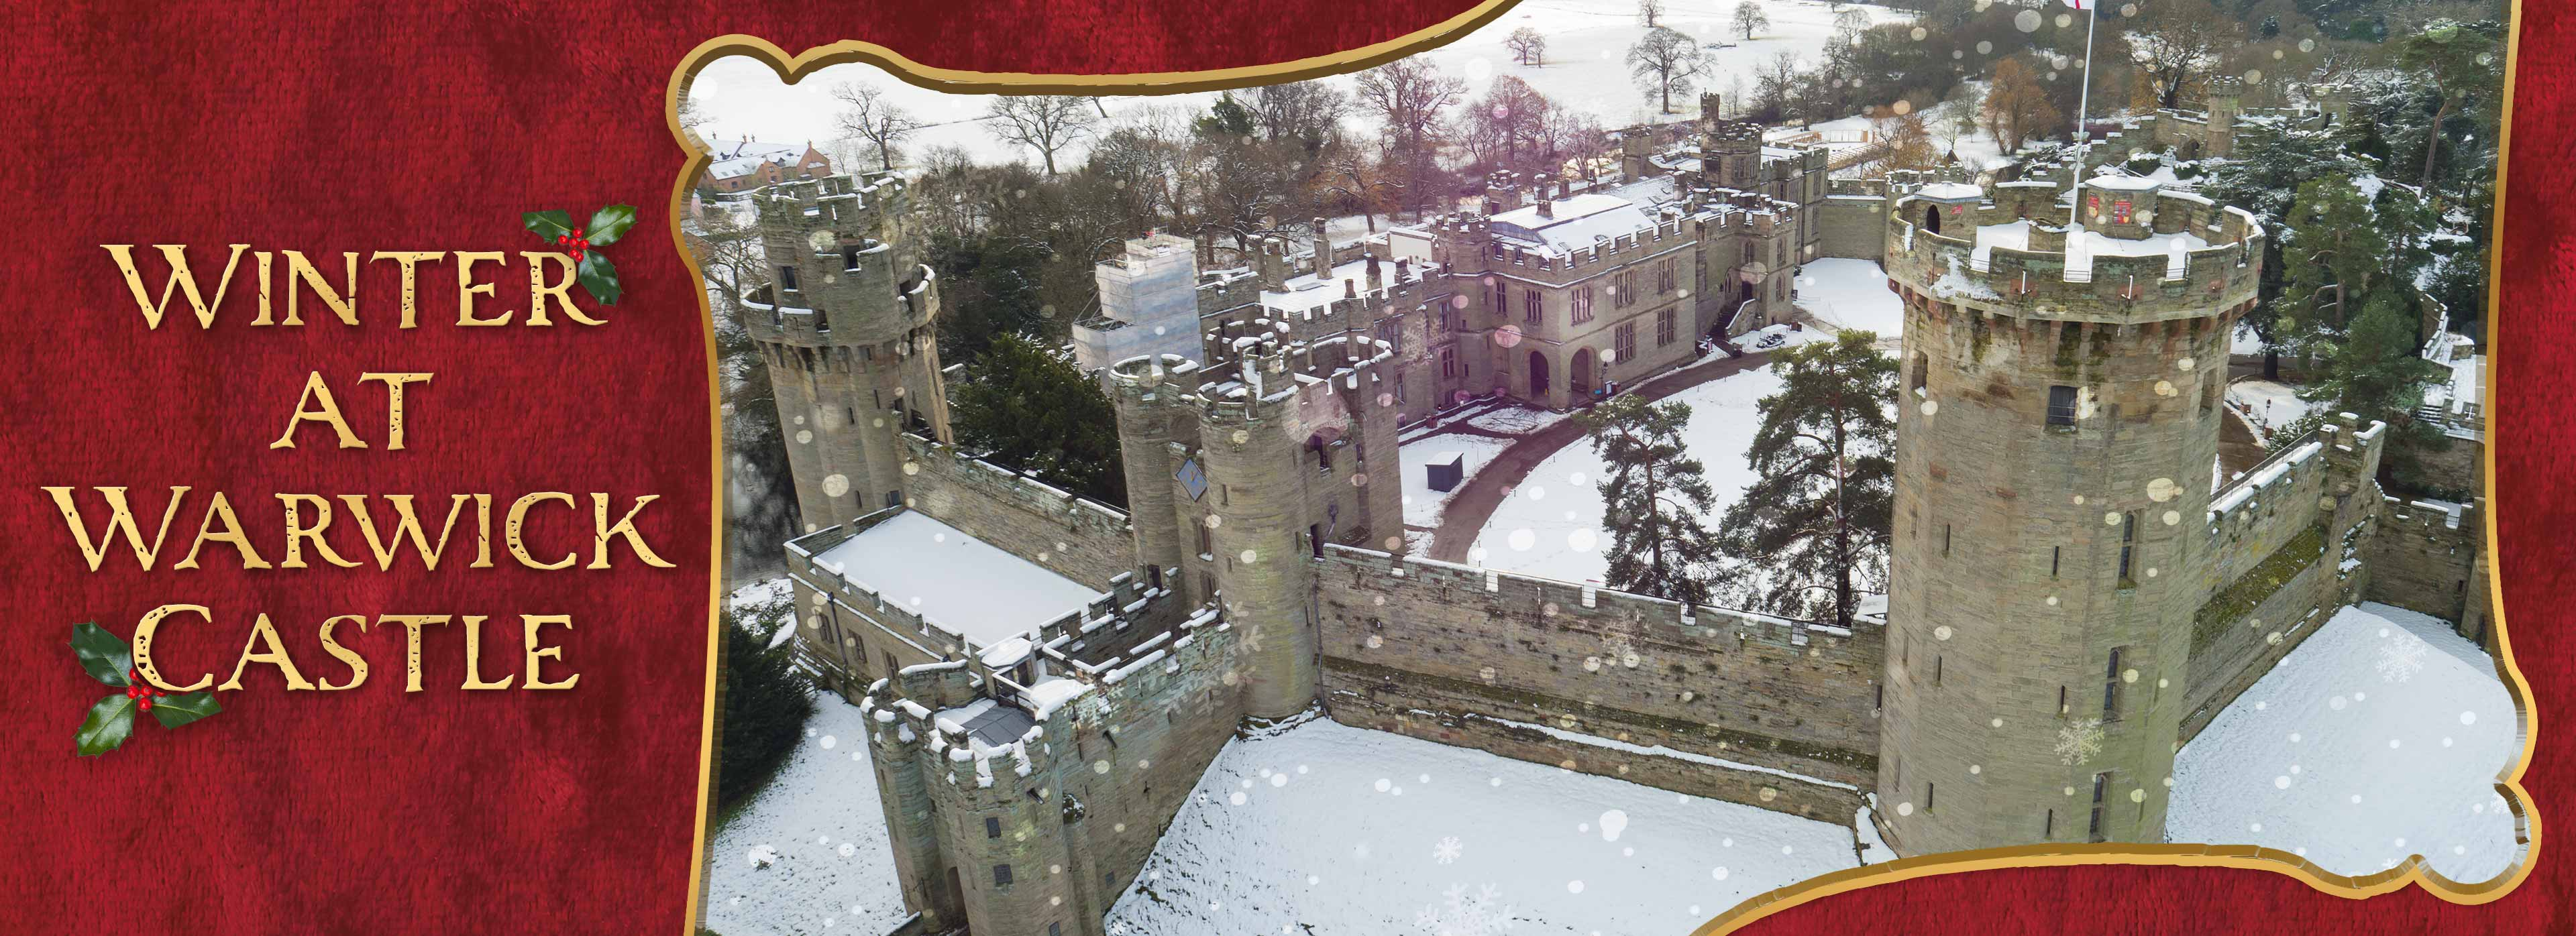 Winter breaks at Warwick Castle